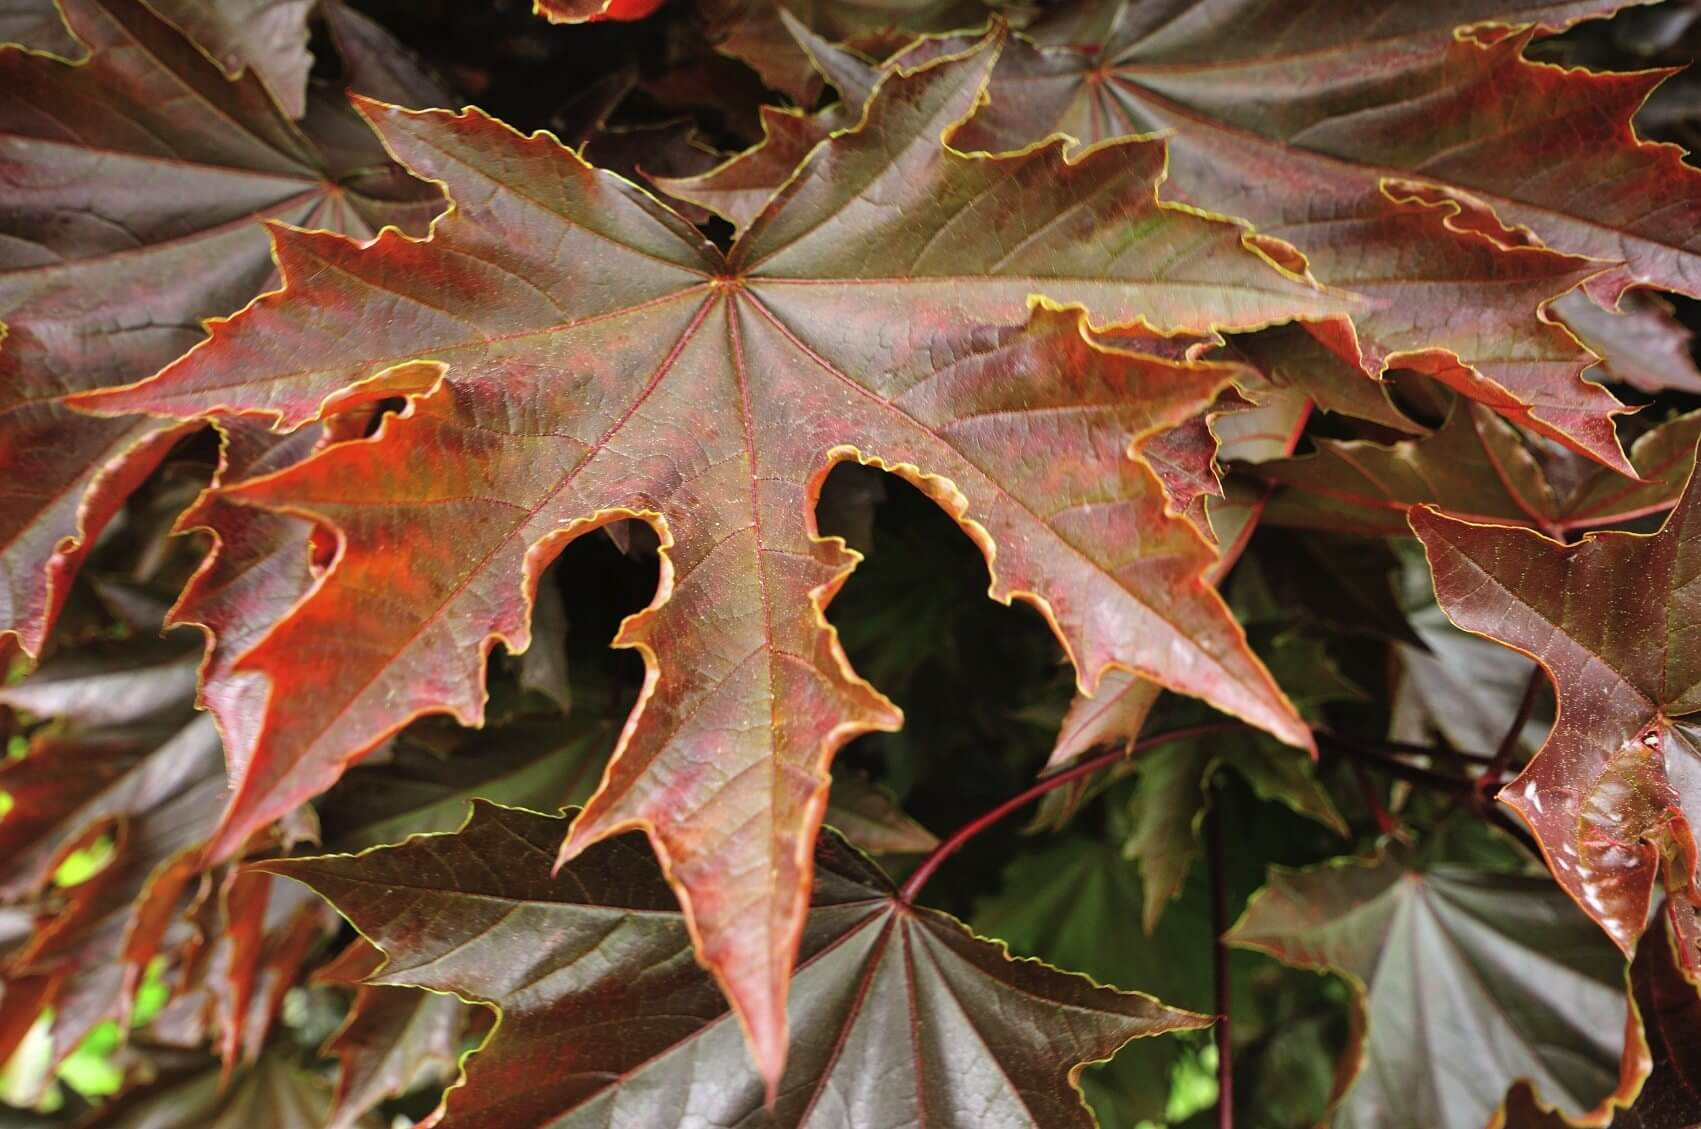 Maple Trees: Types, Leaves, Bark – Identification Guide (Pictures)